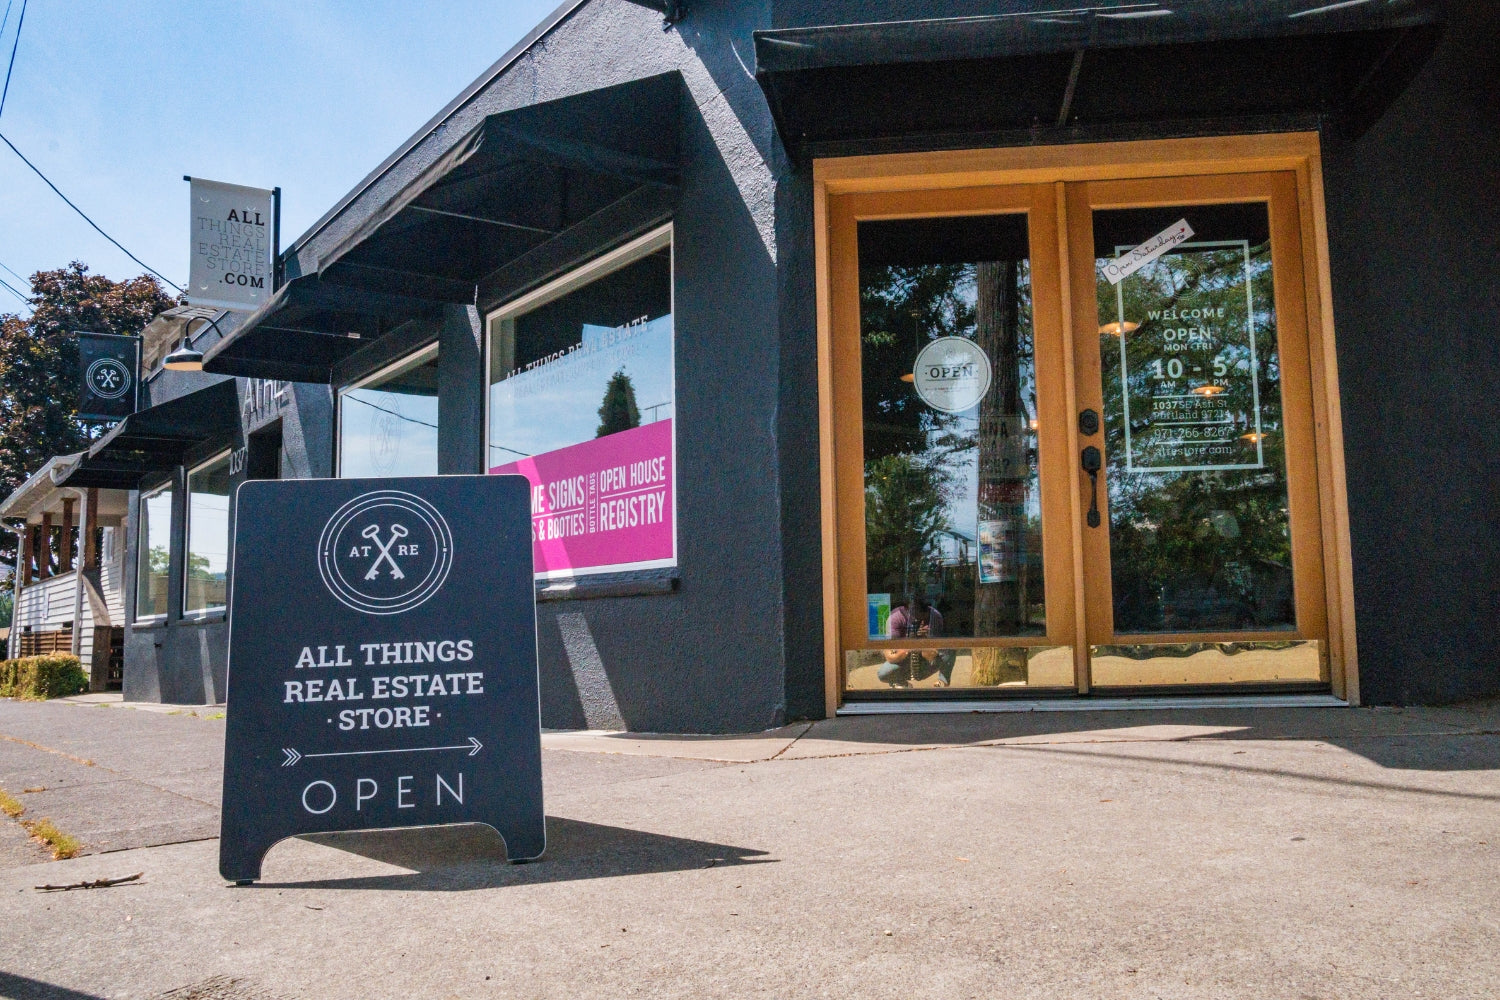 All Things Real Estate's new storefront